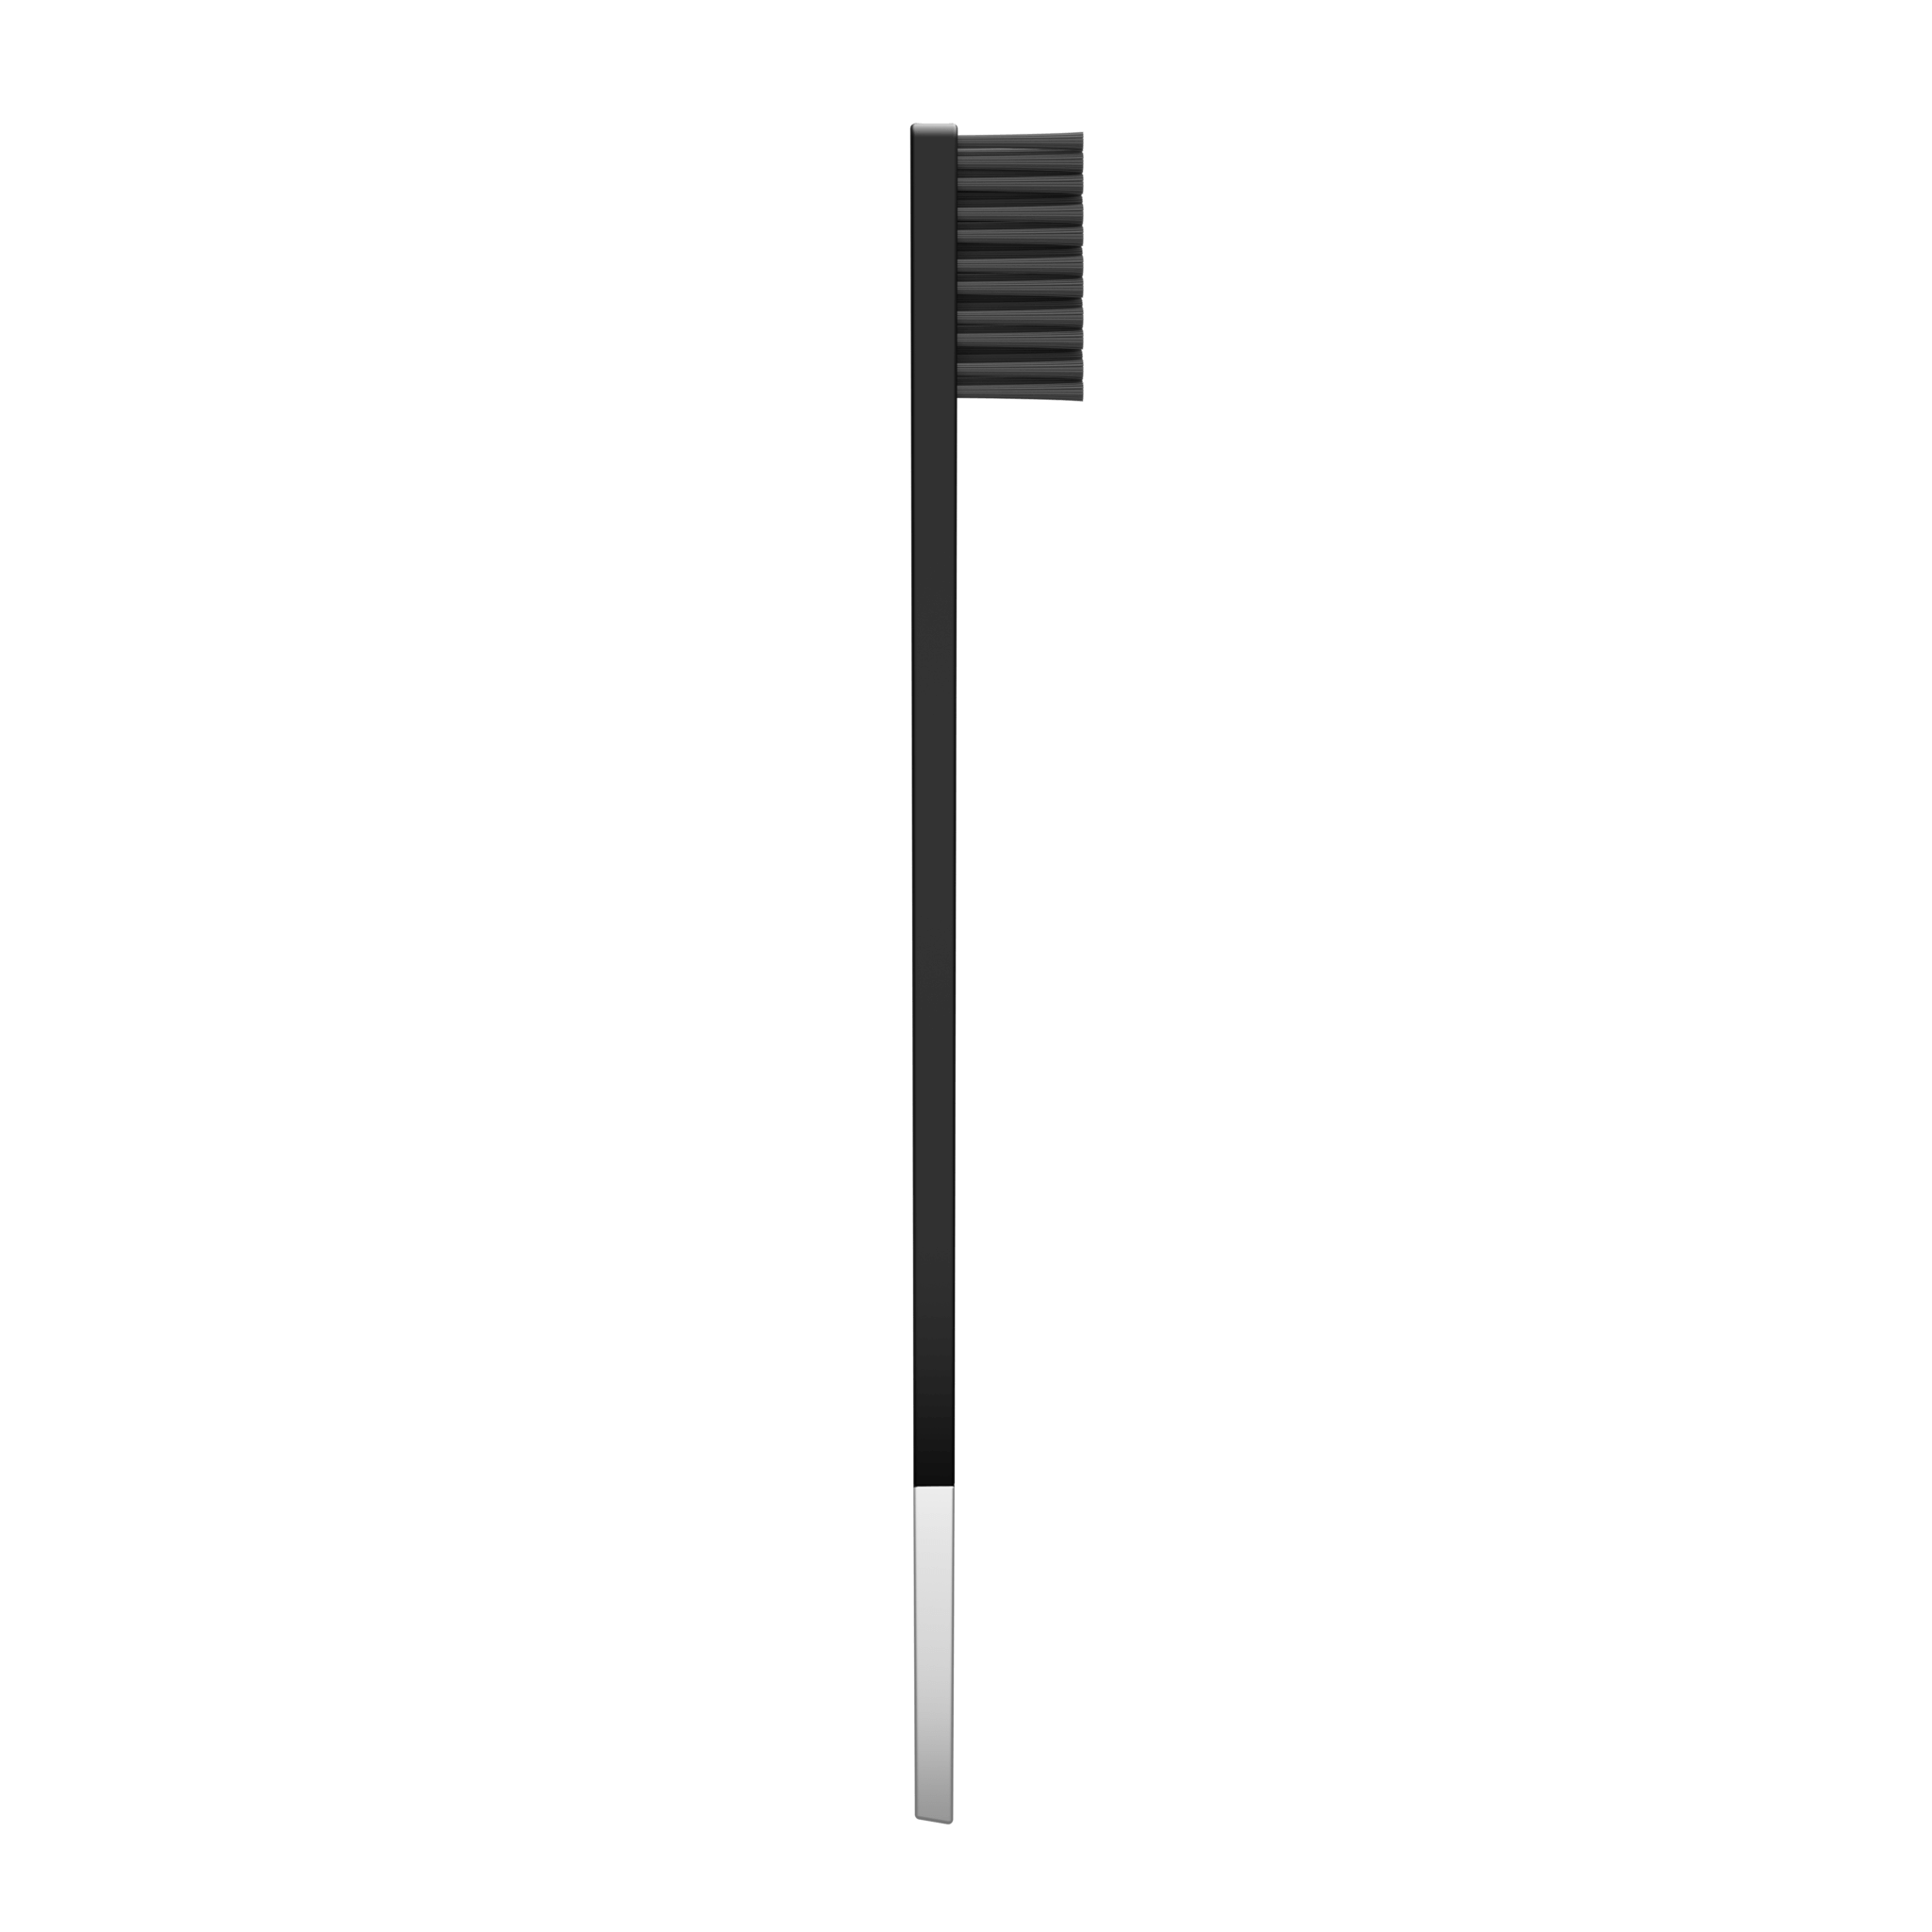 SLIM by Apriori black & silver disposable toothbrush